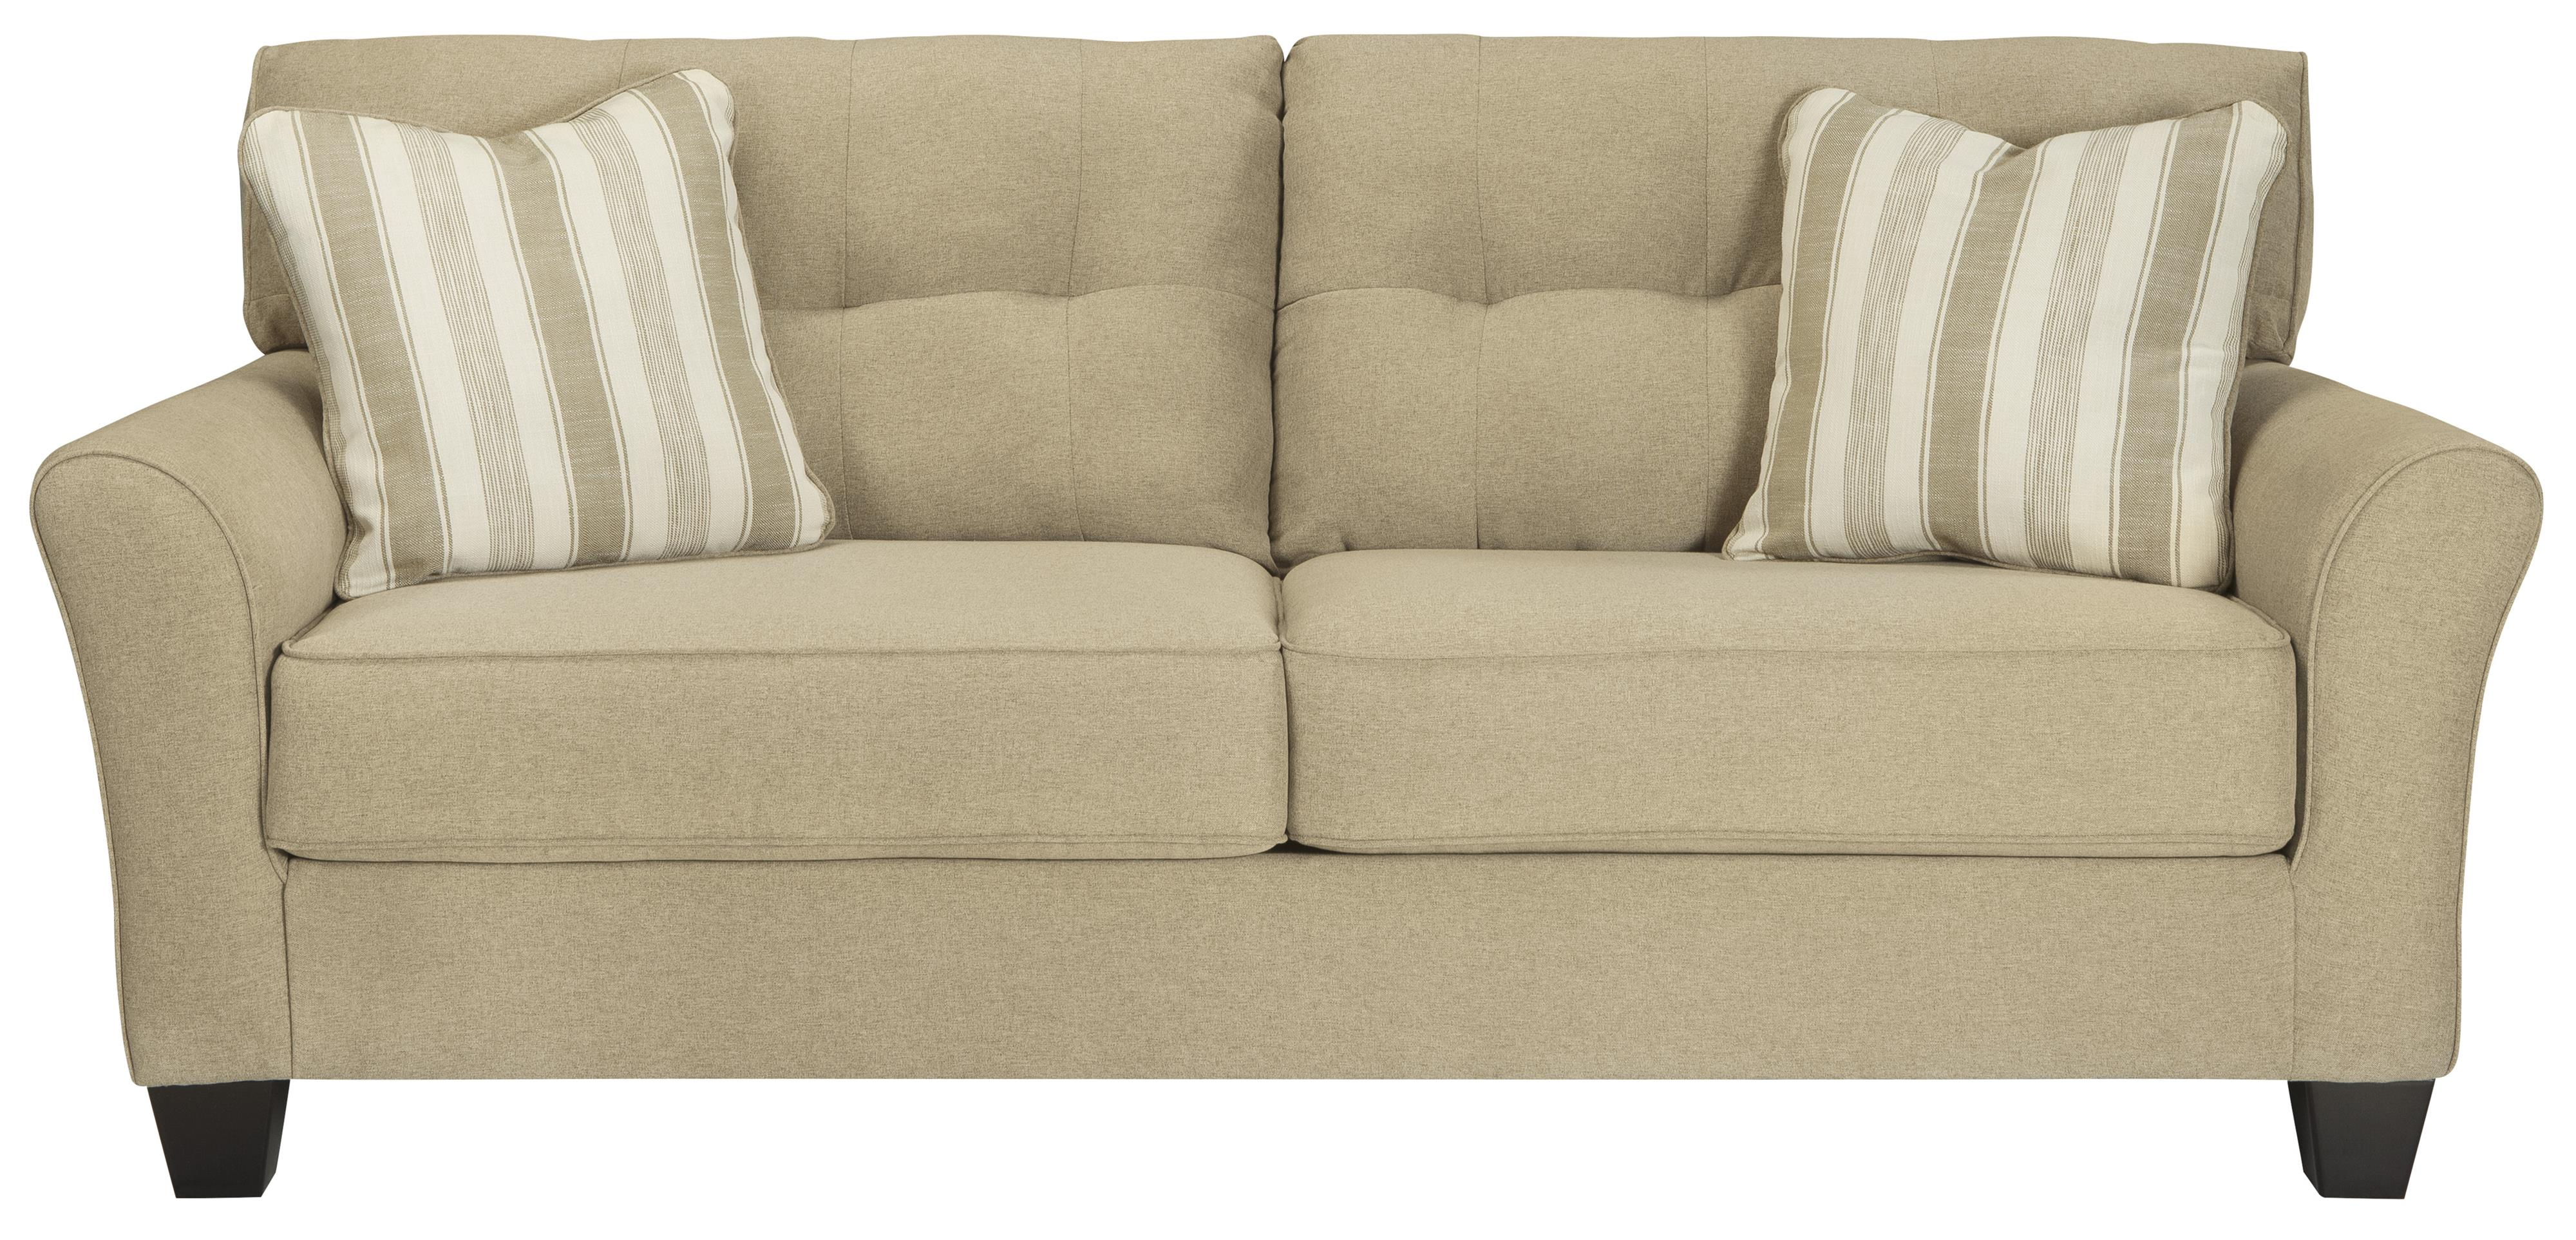 Ashmont Contemporary Sofa in Khaki Fabric Rotmans Sofa